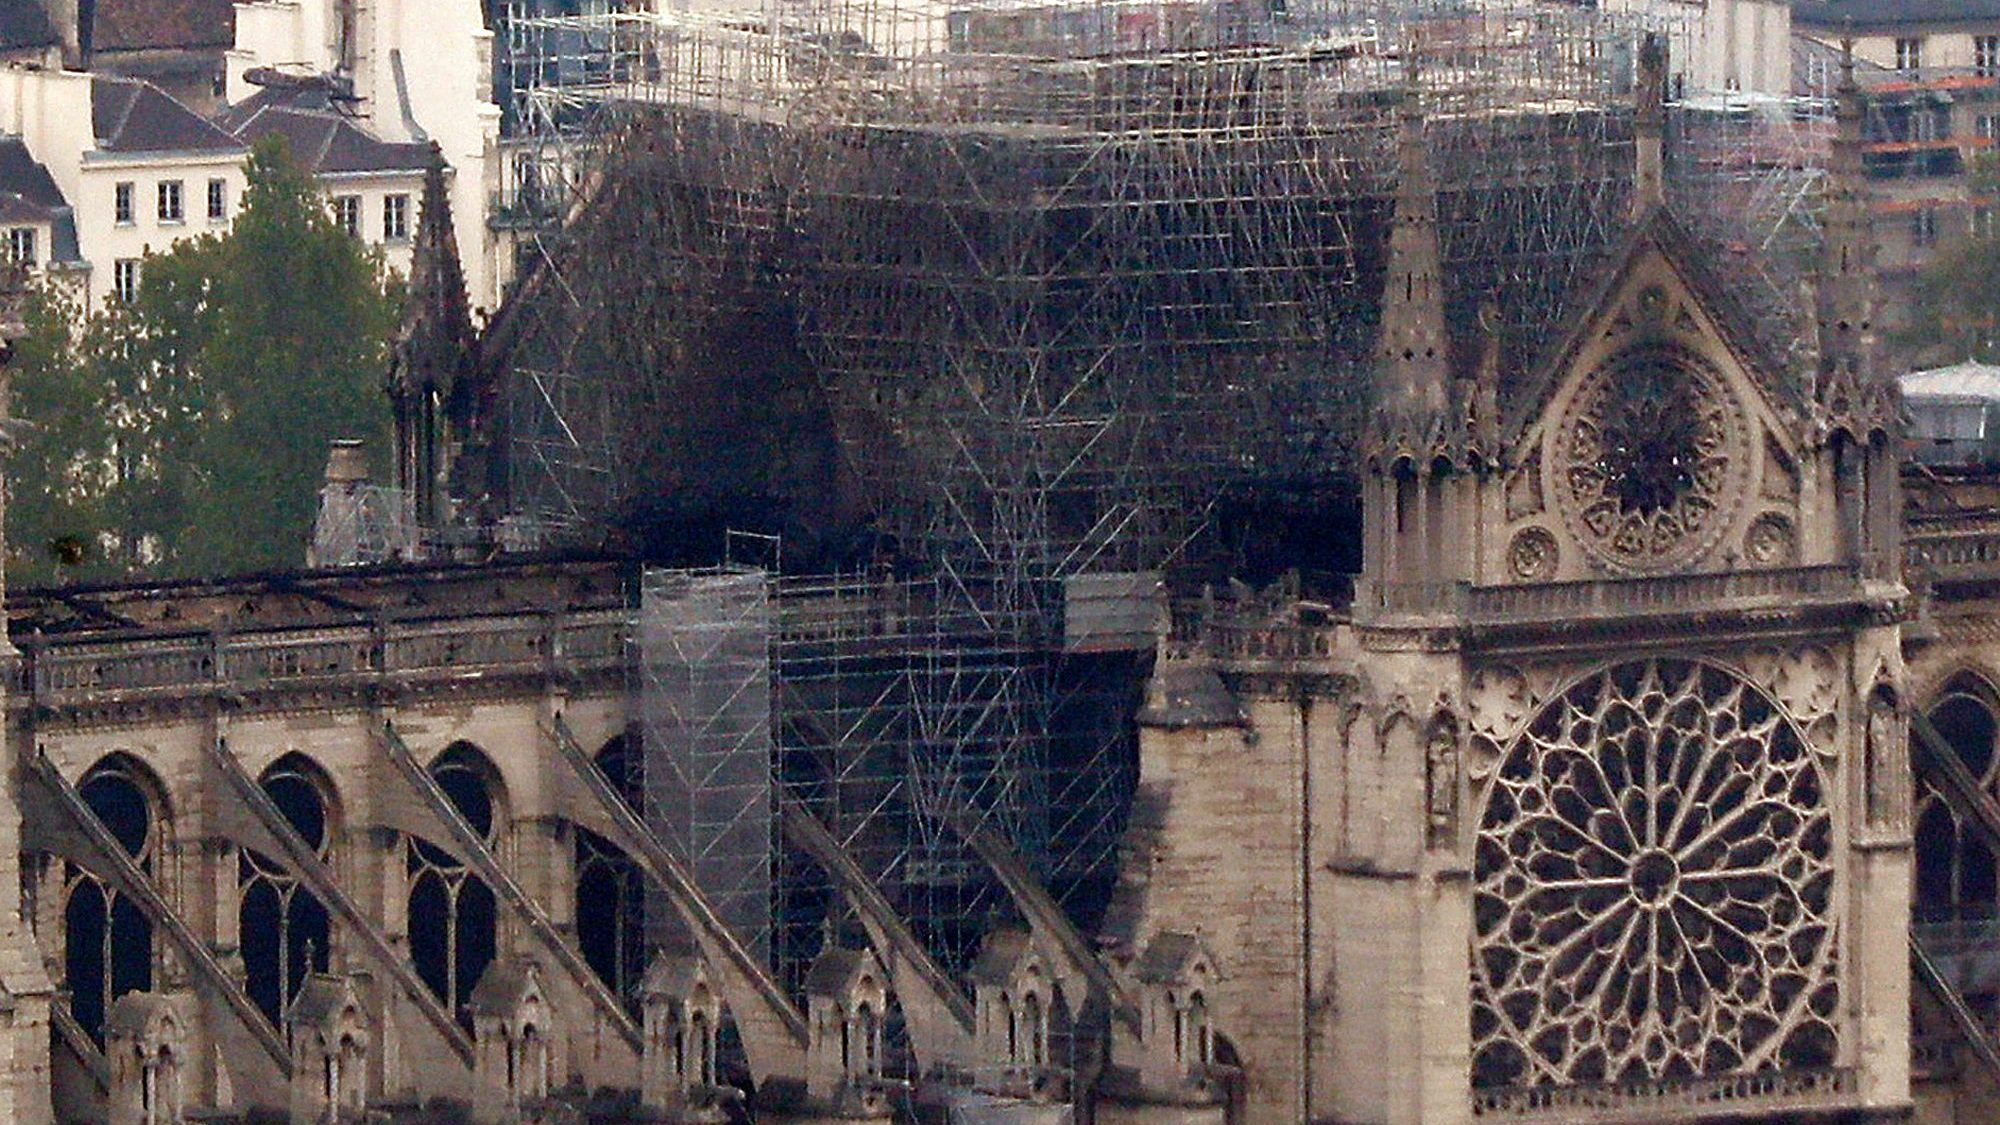 Notre Dame cathedral is pictured from the top of the Montparnasse tower, Tuesday April 16, 2019 in Paris. Firefighters declared success Tuesday morning in an over 12-hour battle to extinguish an inferno engulfing Paris' iconic Notre Dame cathedral that claimed its spire and roof, but spared its bell towers. (AP Photo/Thibault Camus)